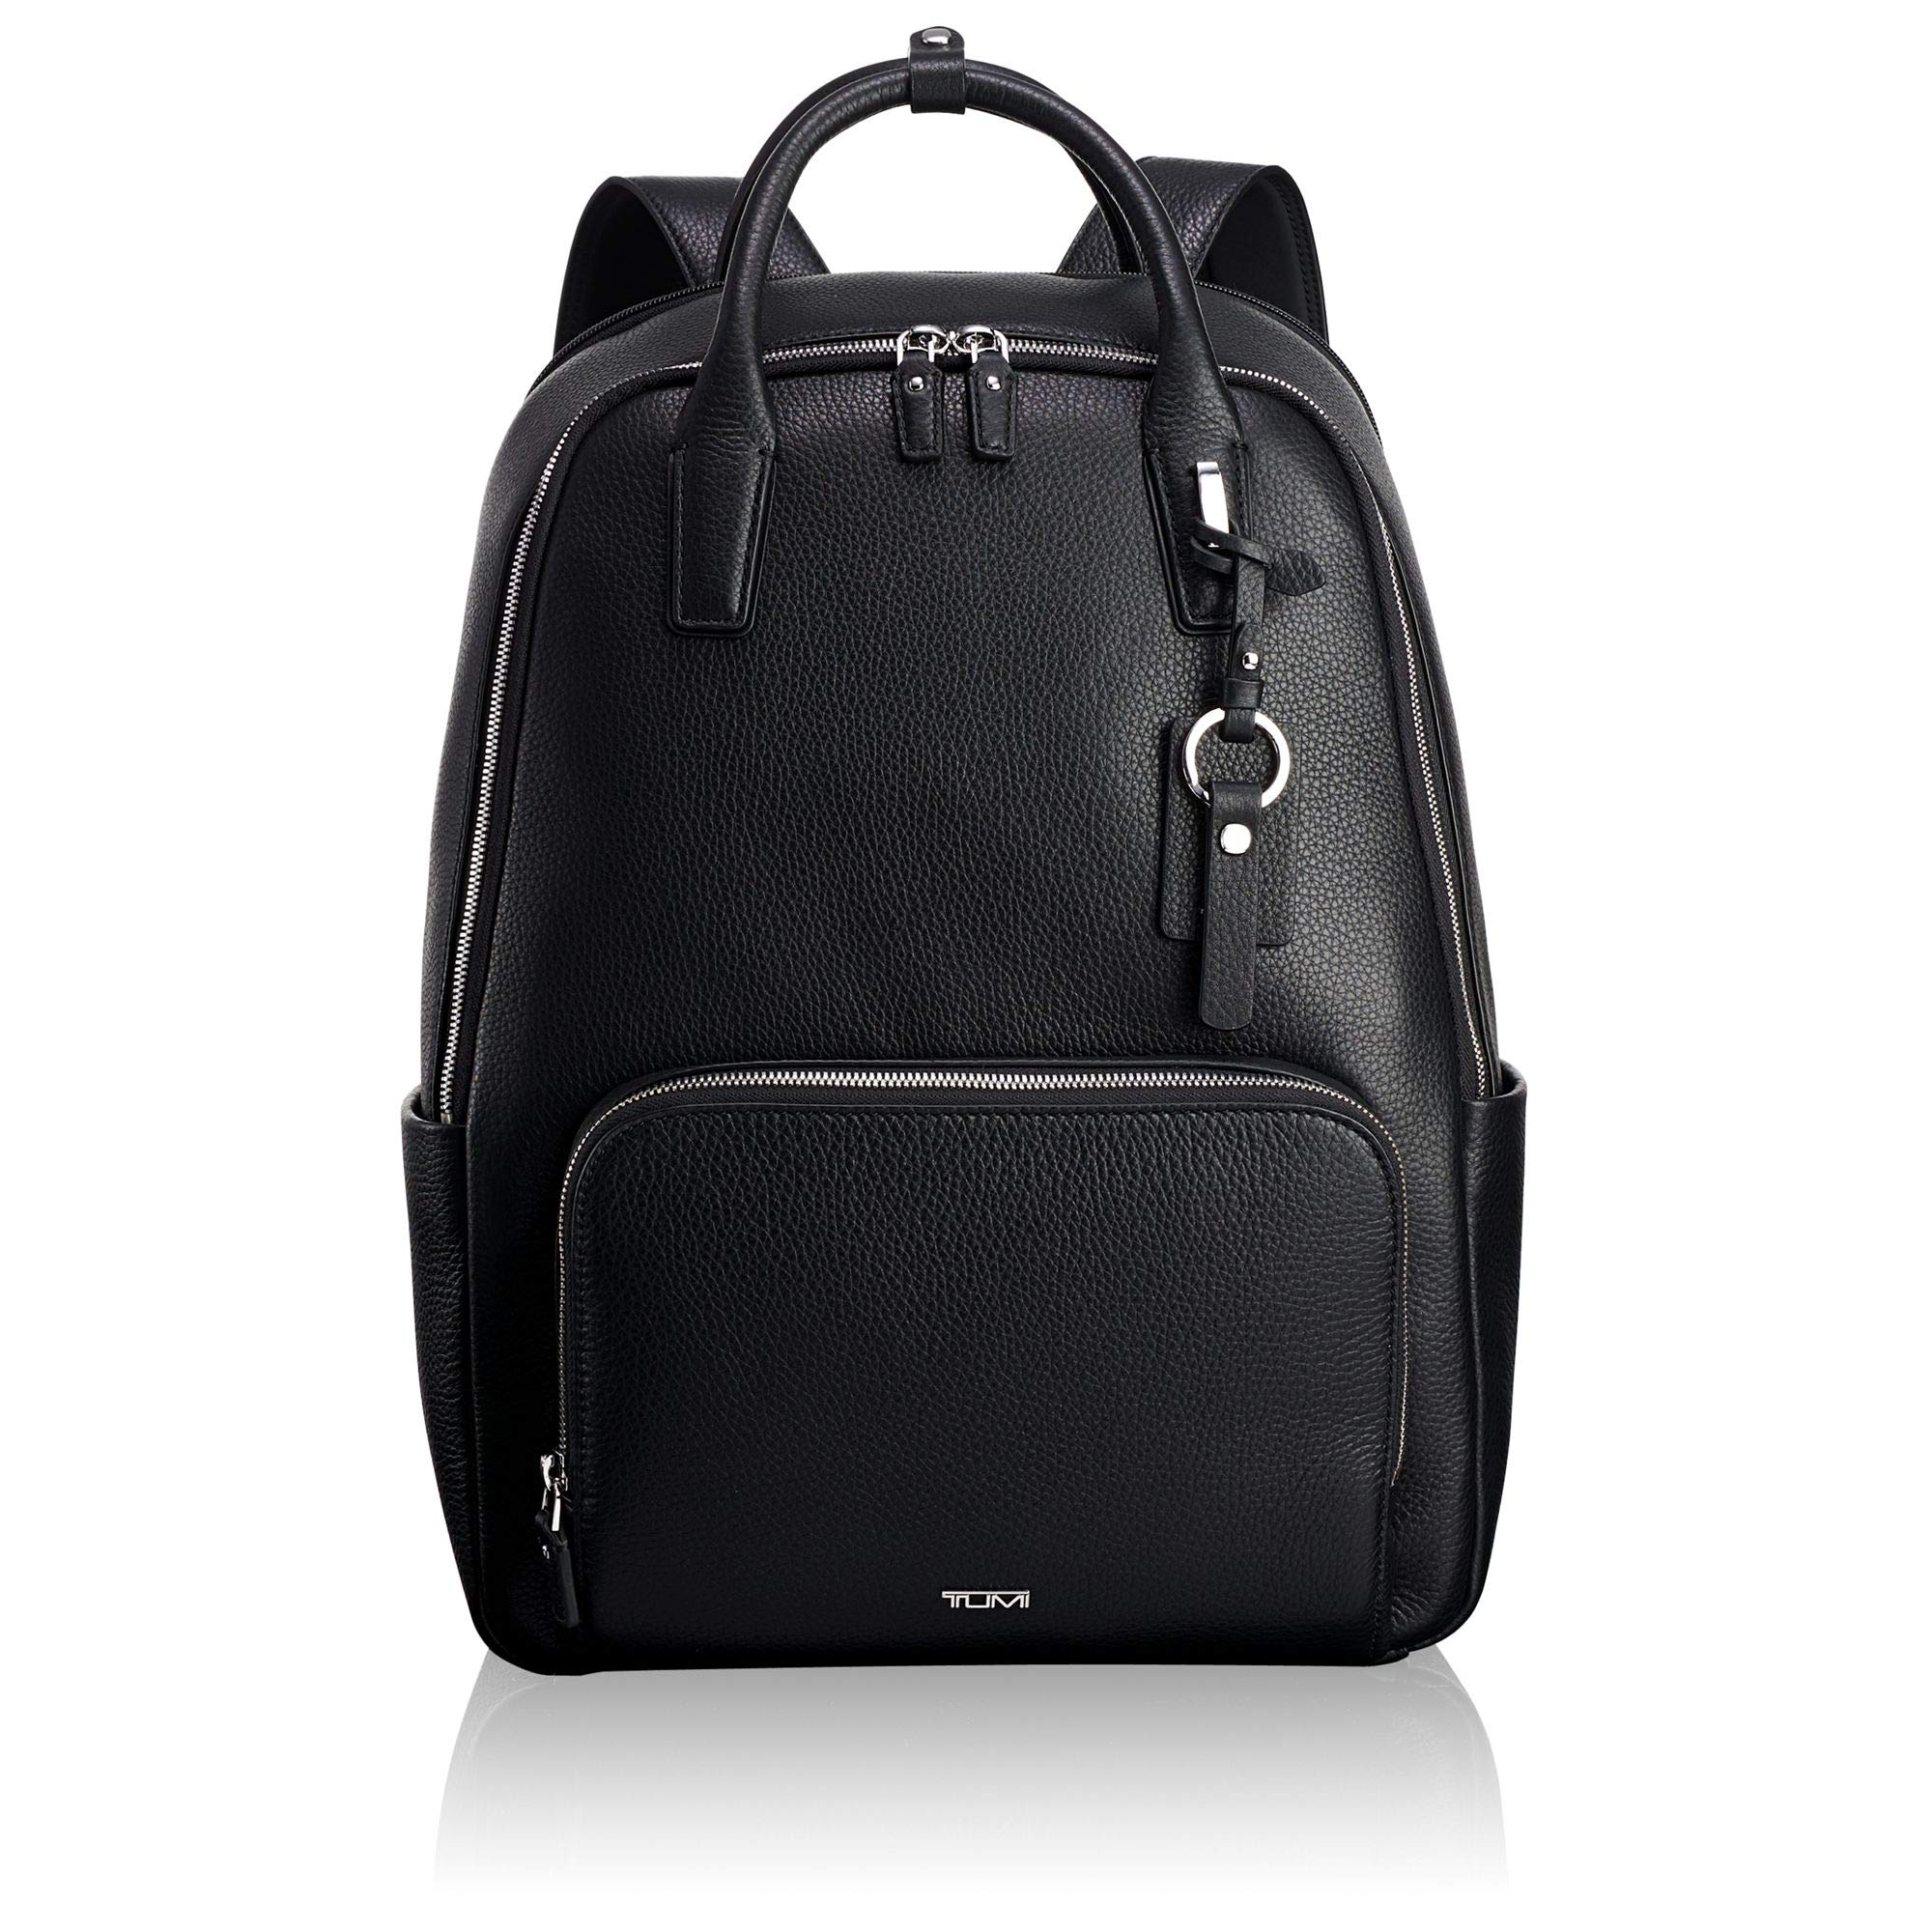 TUMI - Stanton Indra Laptop Backpack - 15 Inch Computer Bag for Women